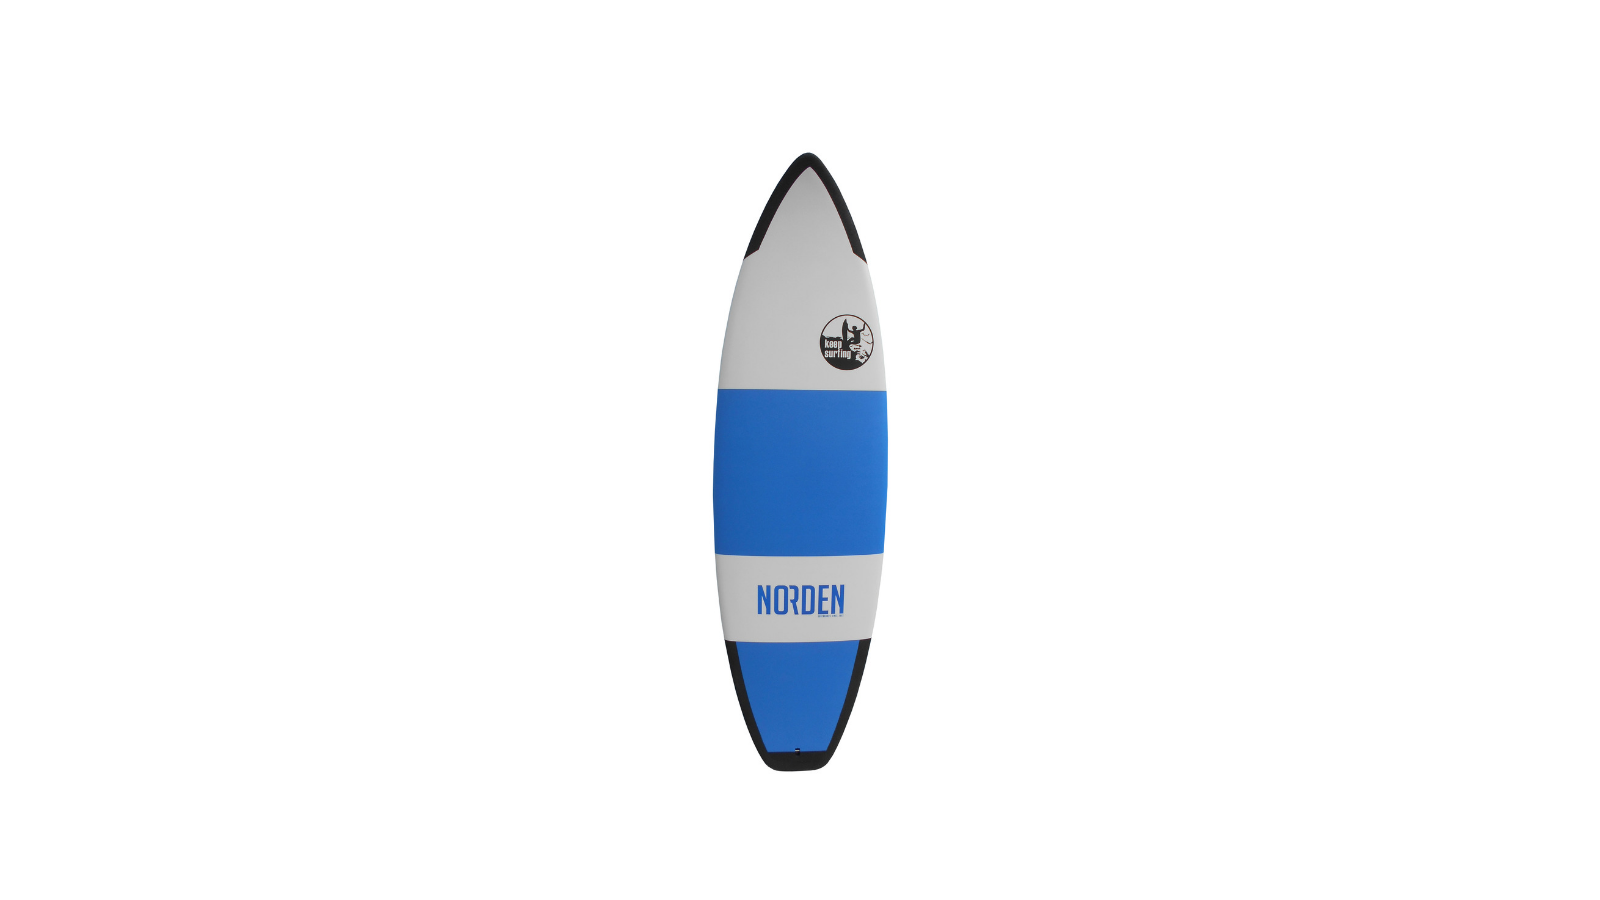 norden-surfboards-softtop-river-stationary wave